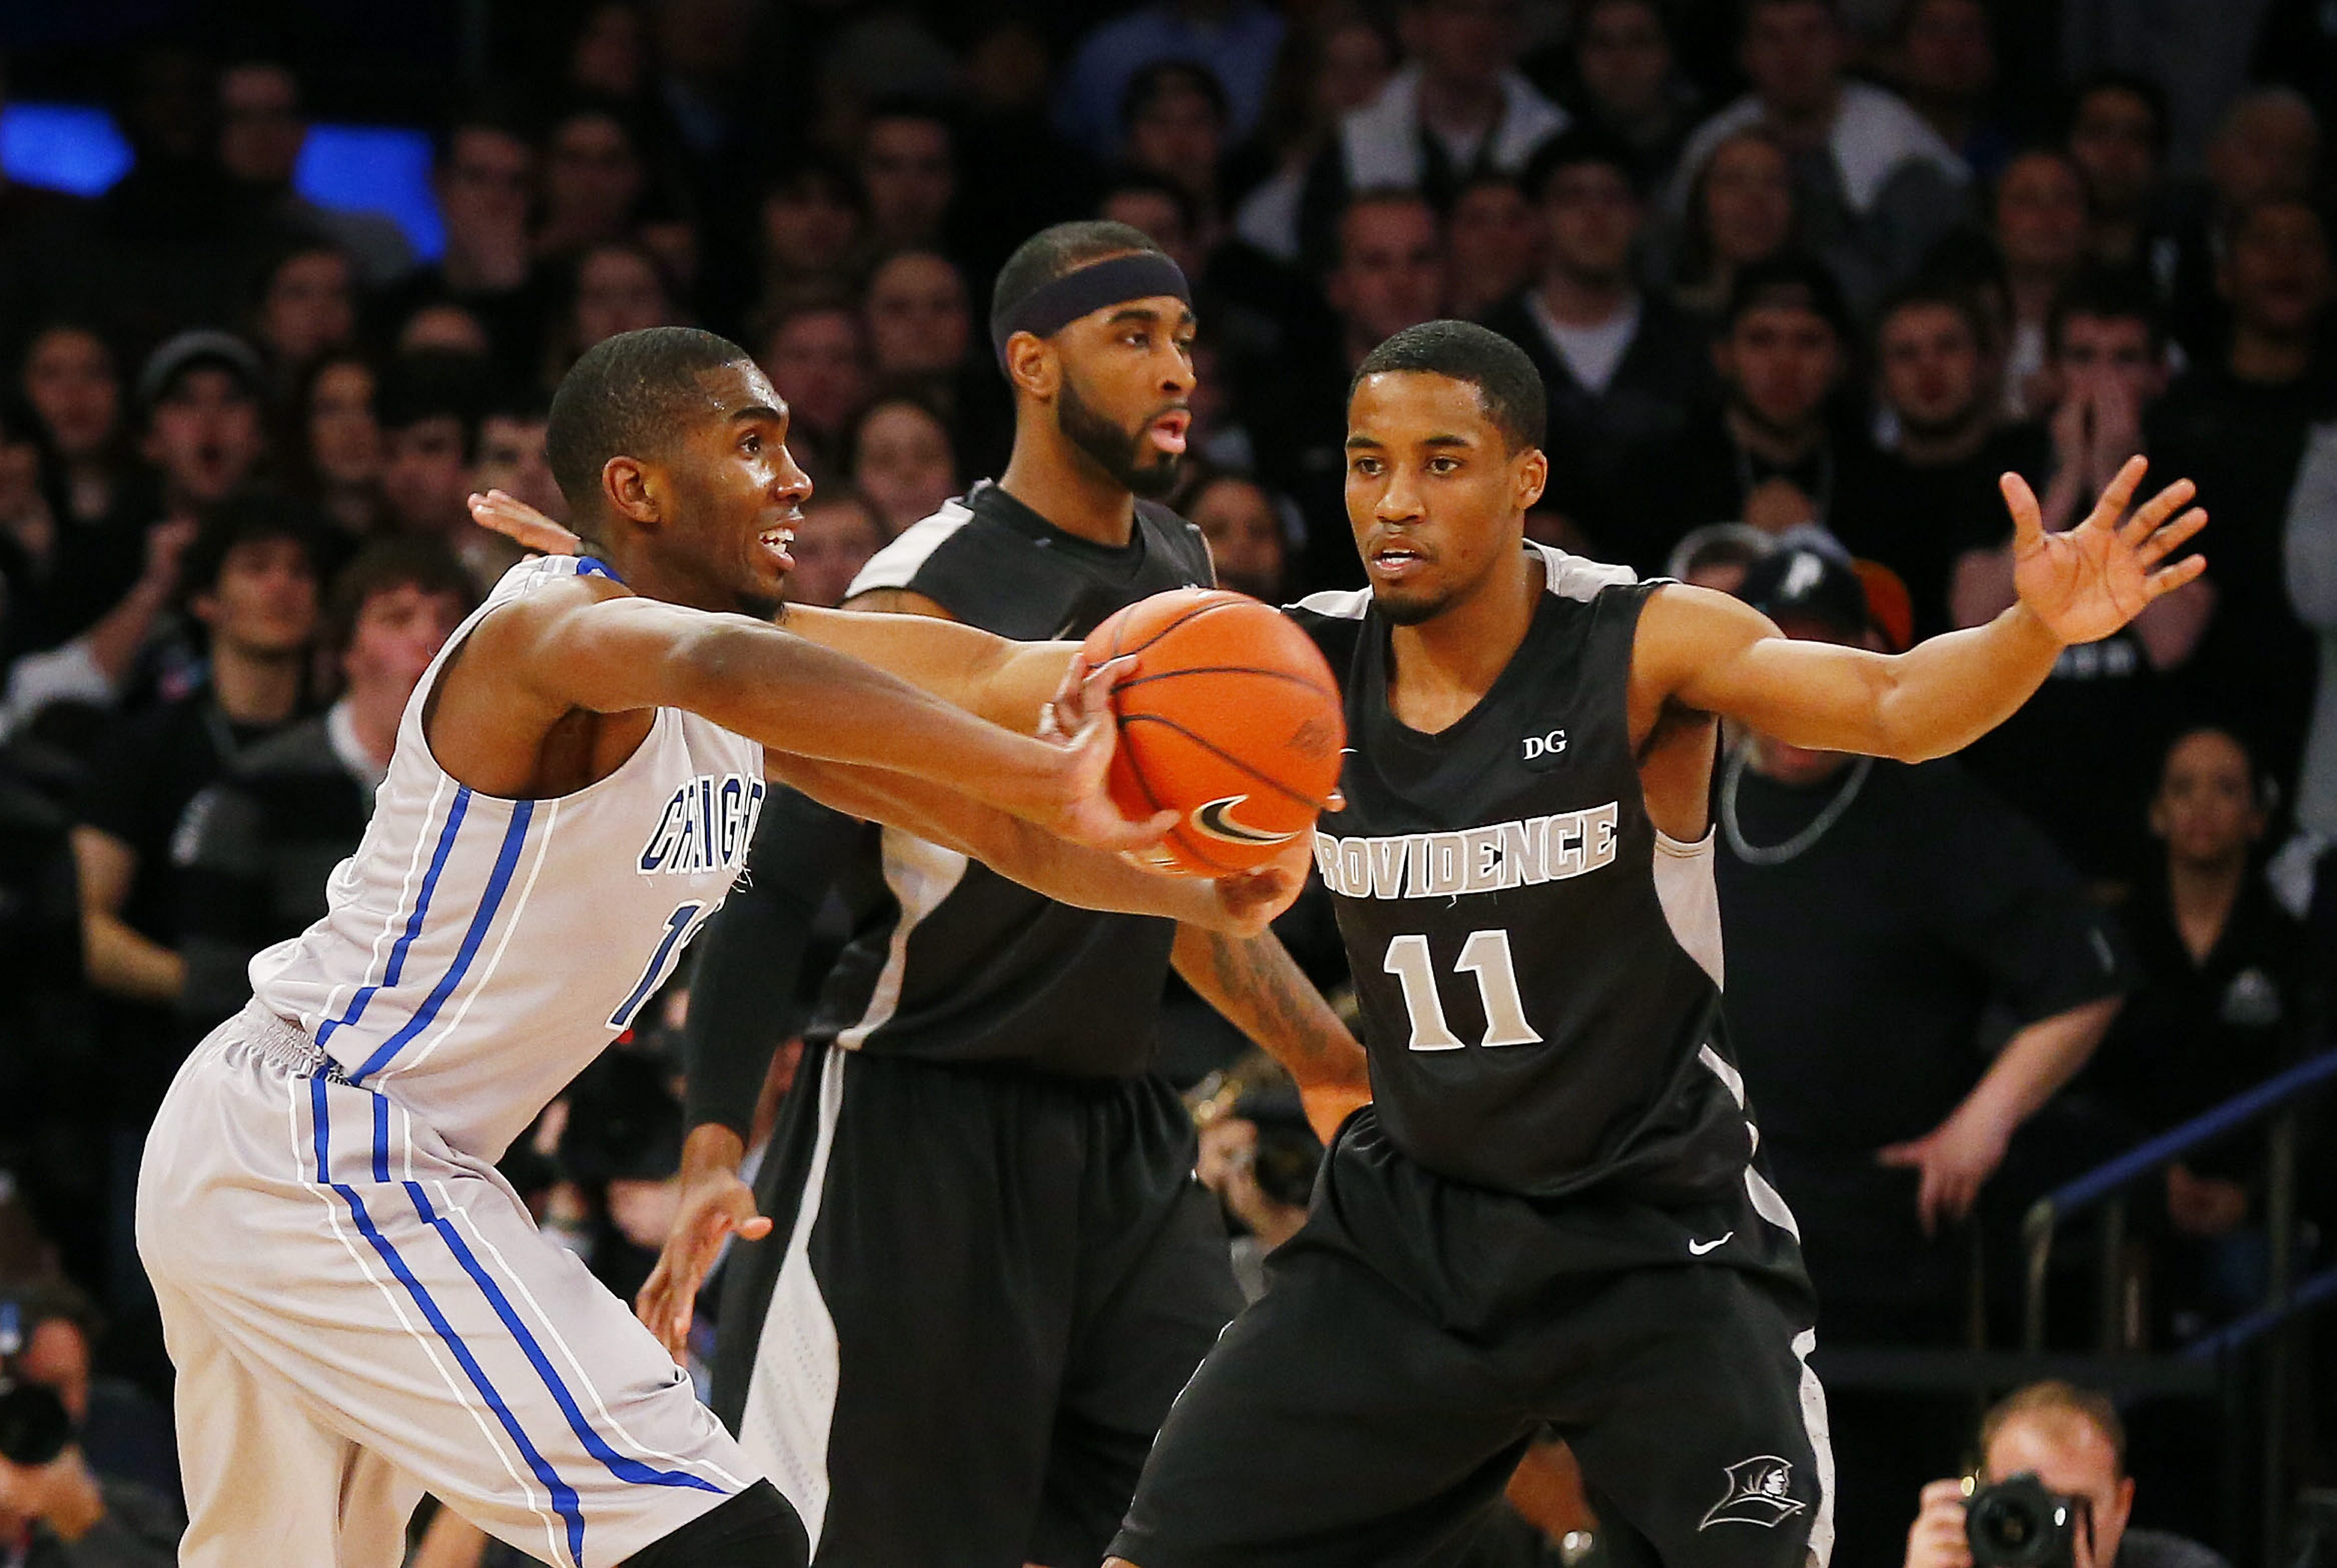 Bryce Cotton of Providence, defending Jahenns Manigat of  Creighton, averages 39.9 minutes a game.